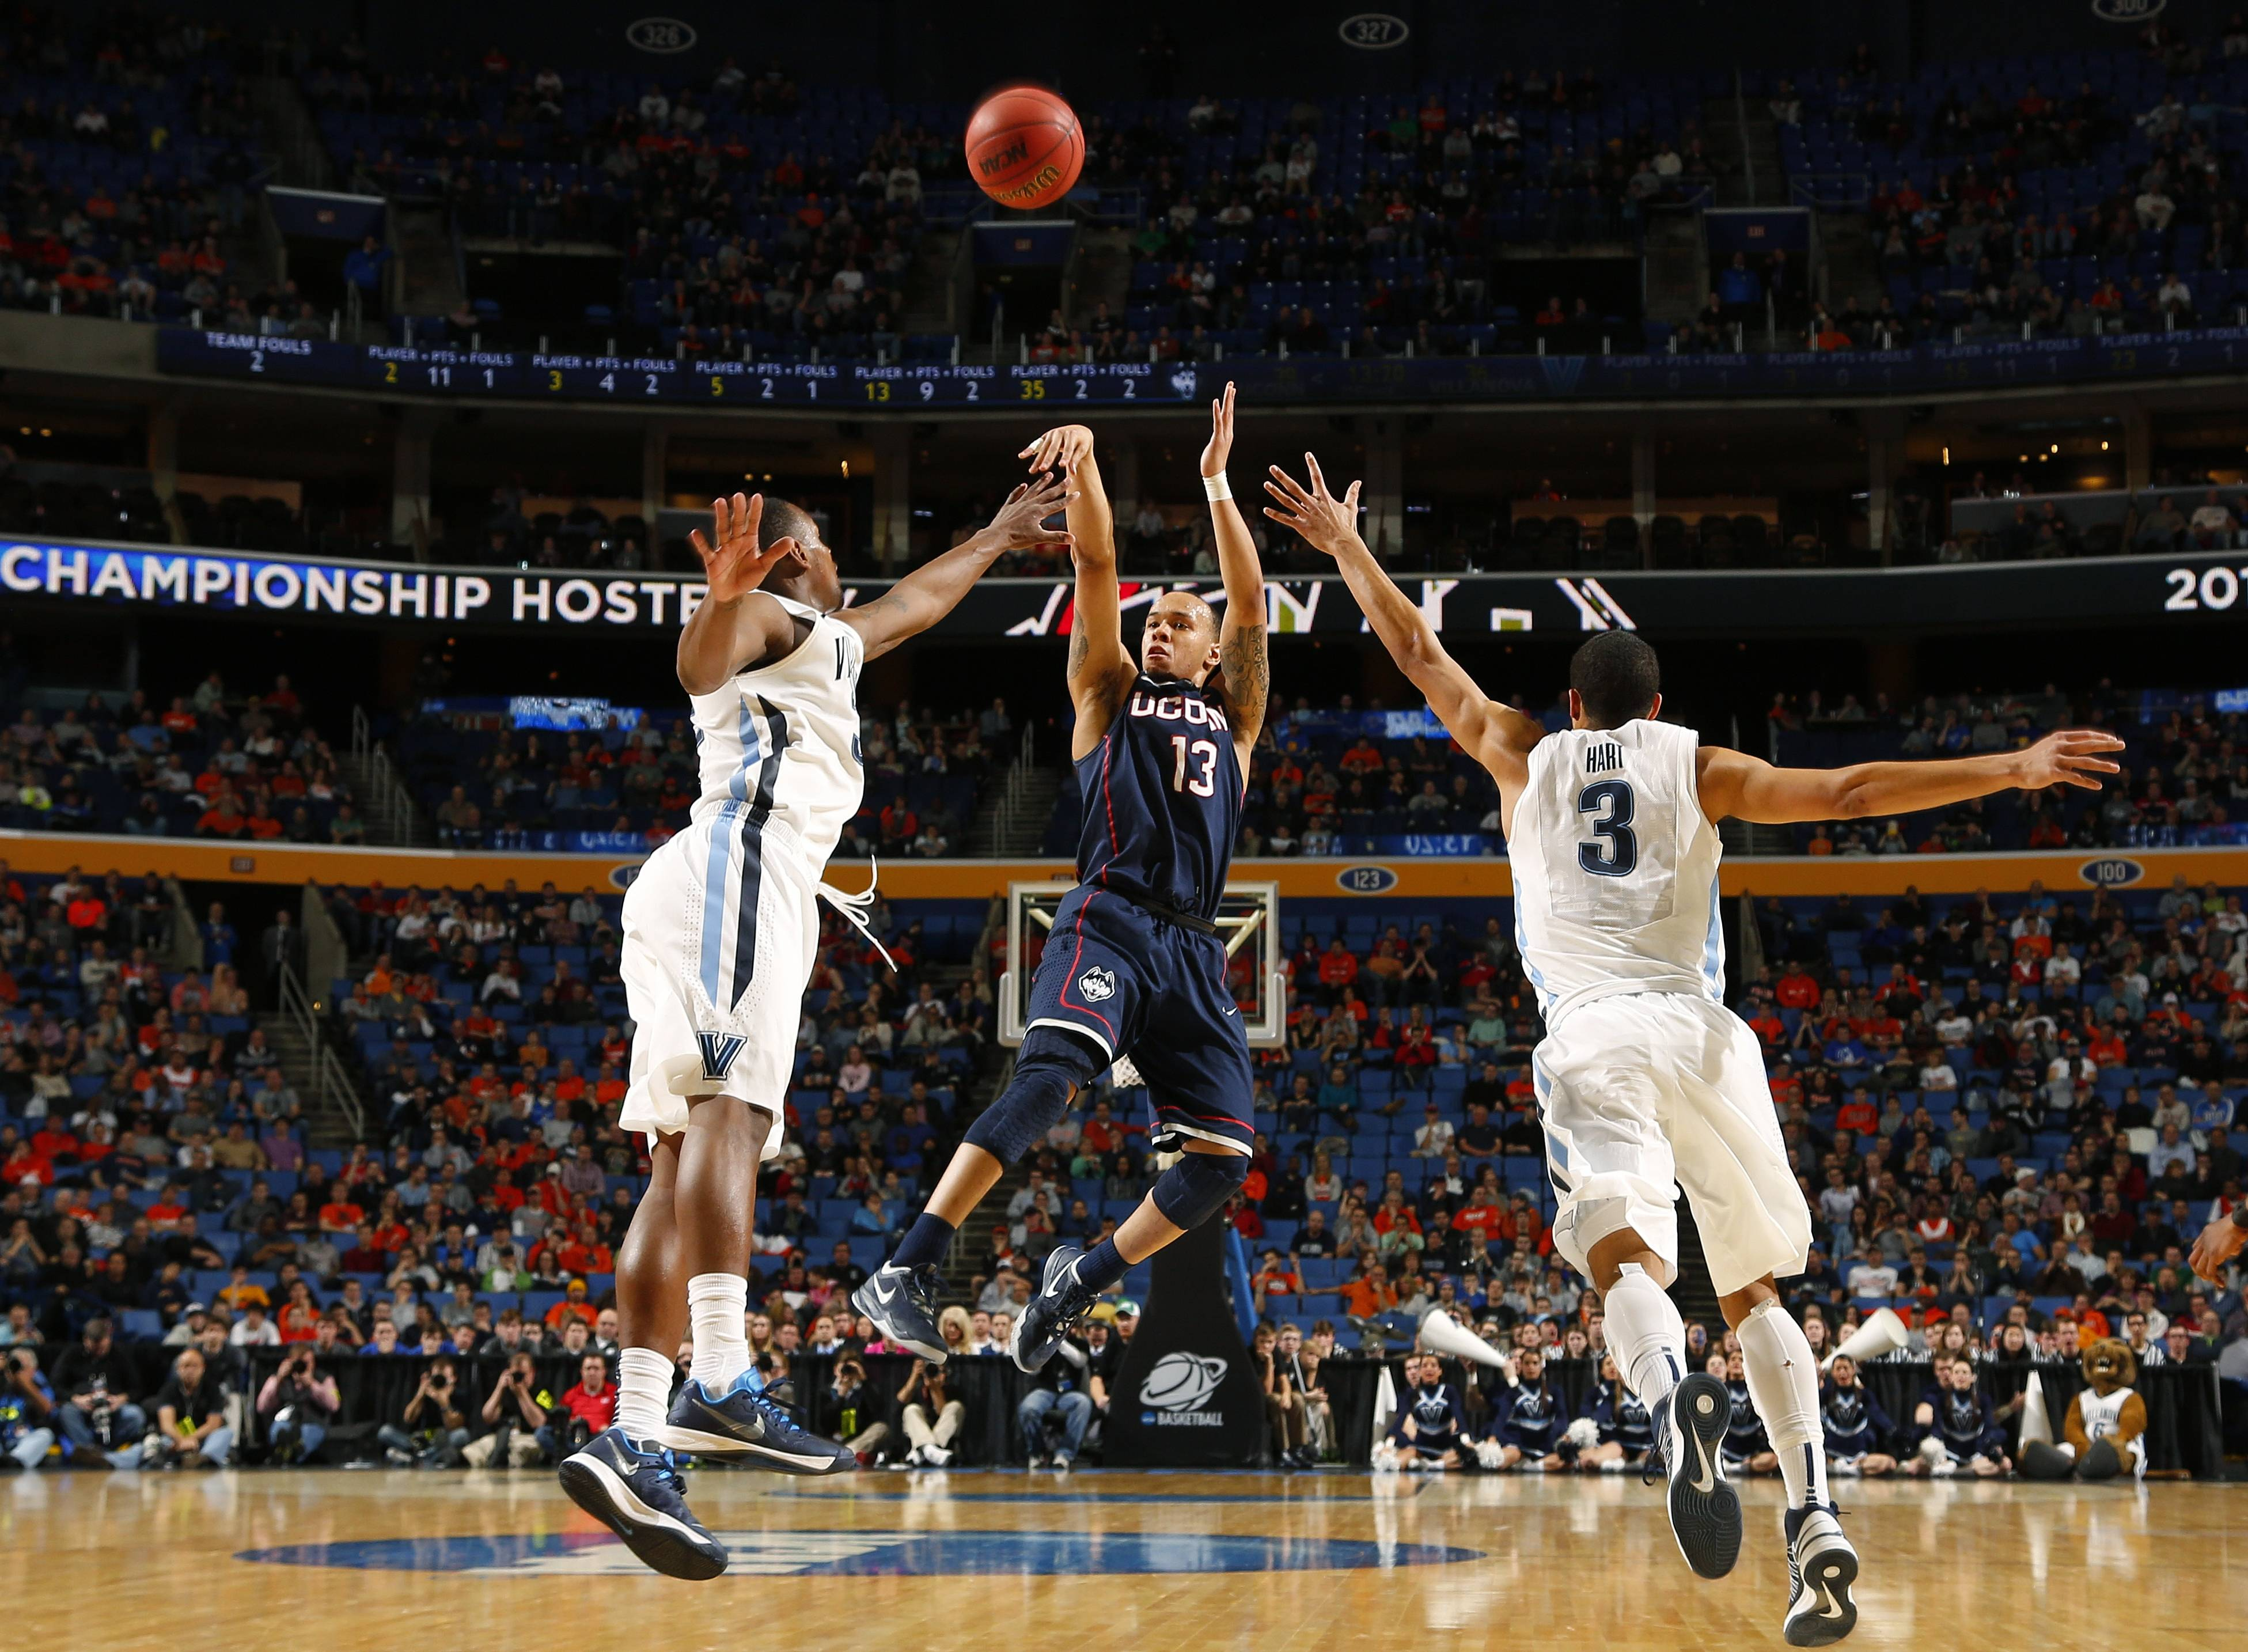 Villanova's Josh Hart (3) runs out to defend Connecticut's Shabazz Napier (13) during a third-round game in the NCAA men's college basketball tournament Saturday in Buffalo, N.Y. Napier scored 25 points in Connecticut's 77-65 win over Villanova.